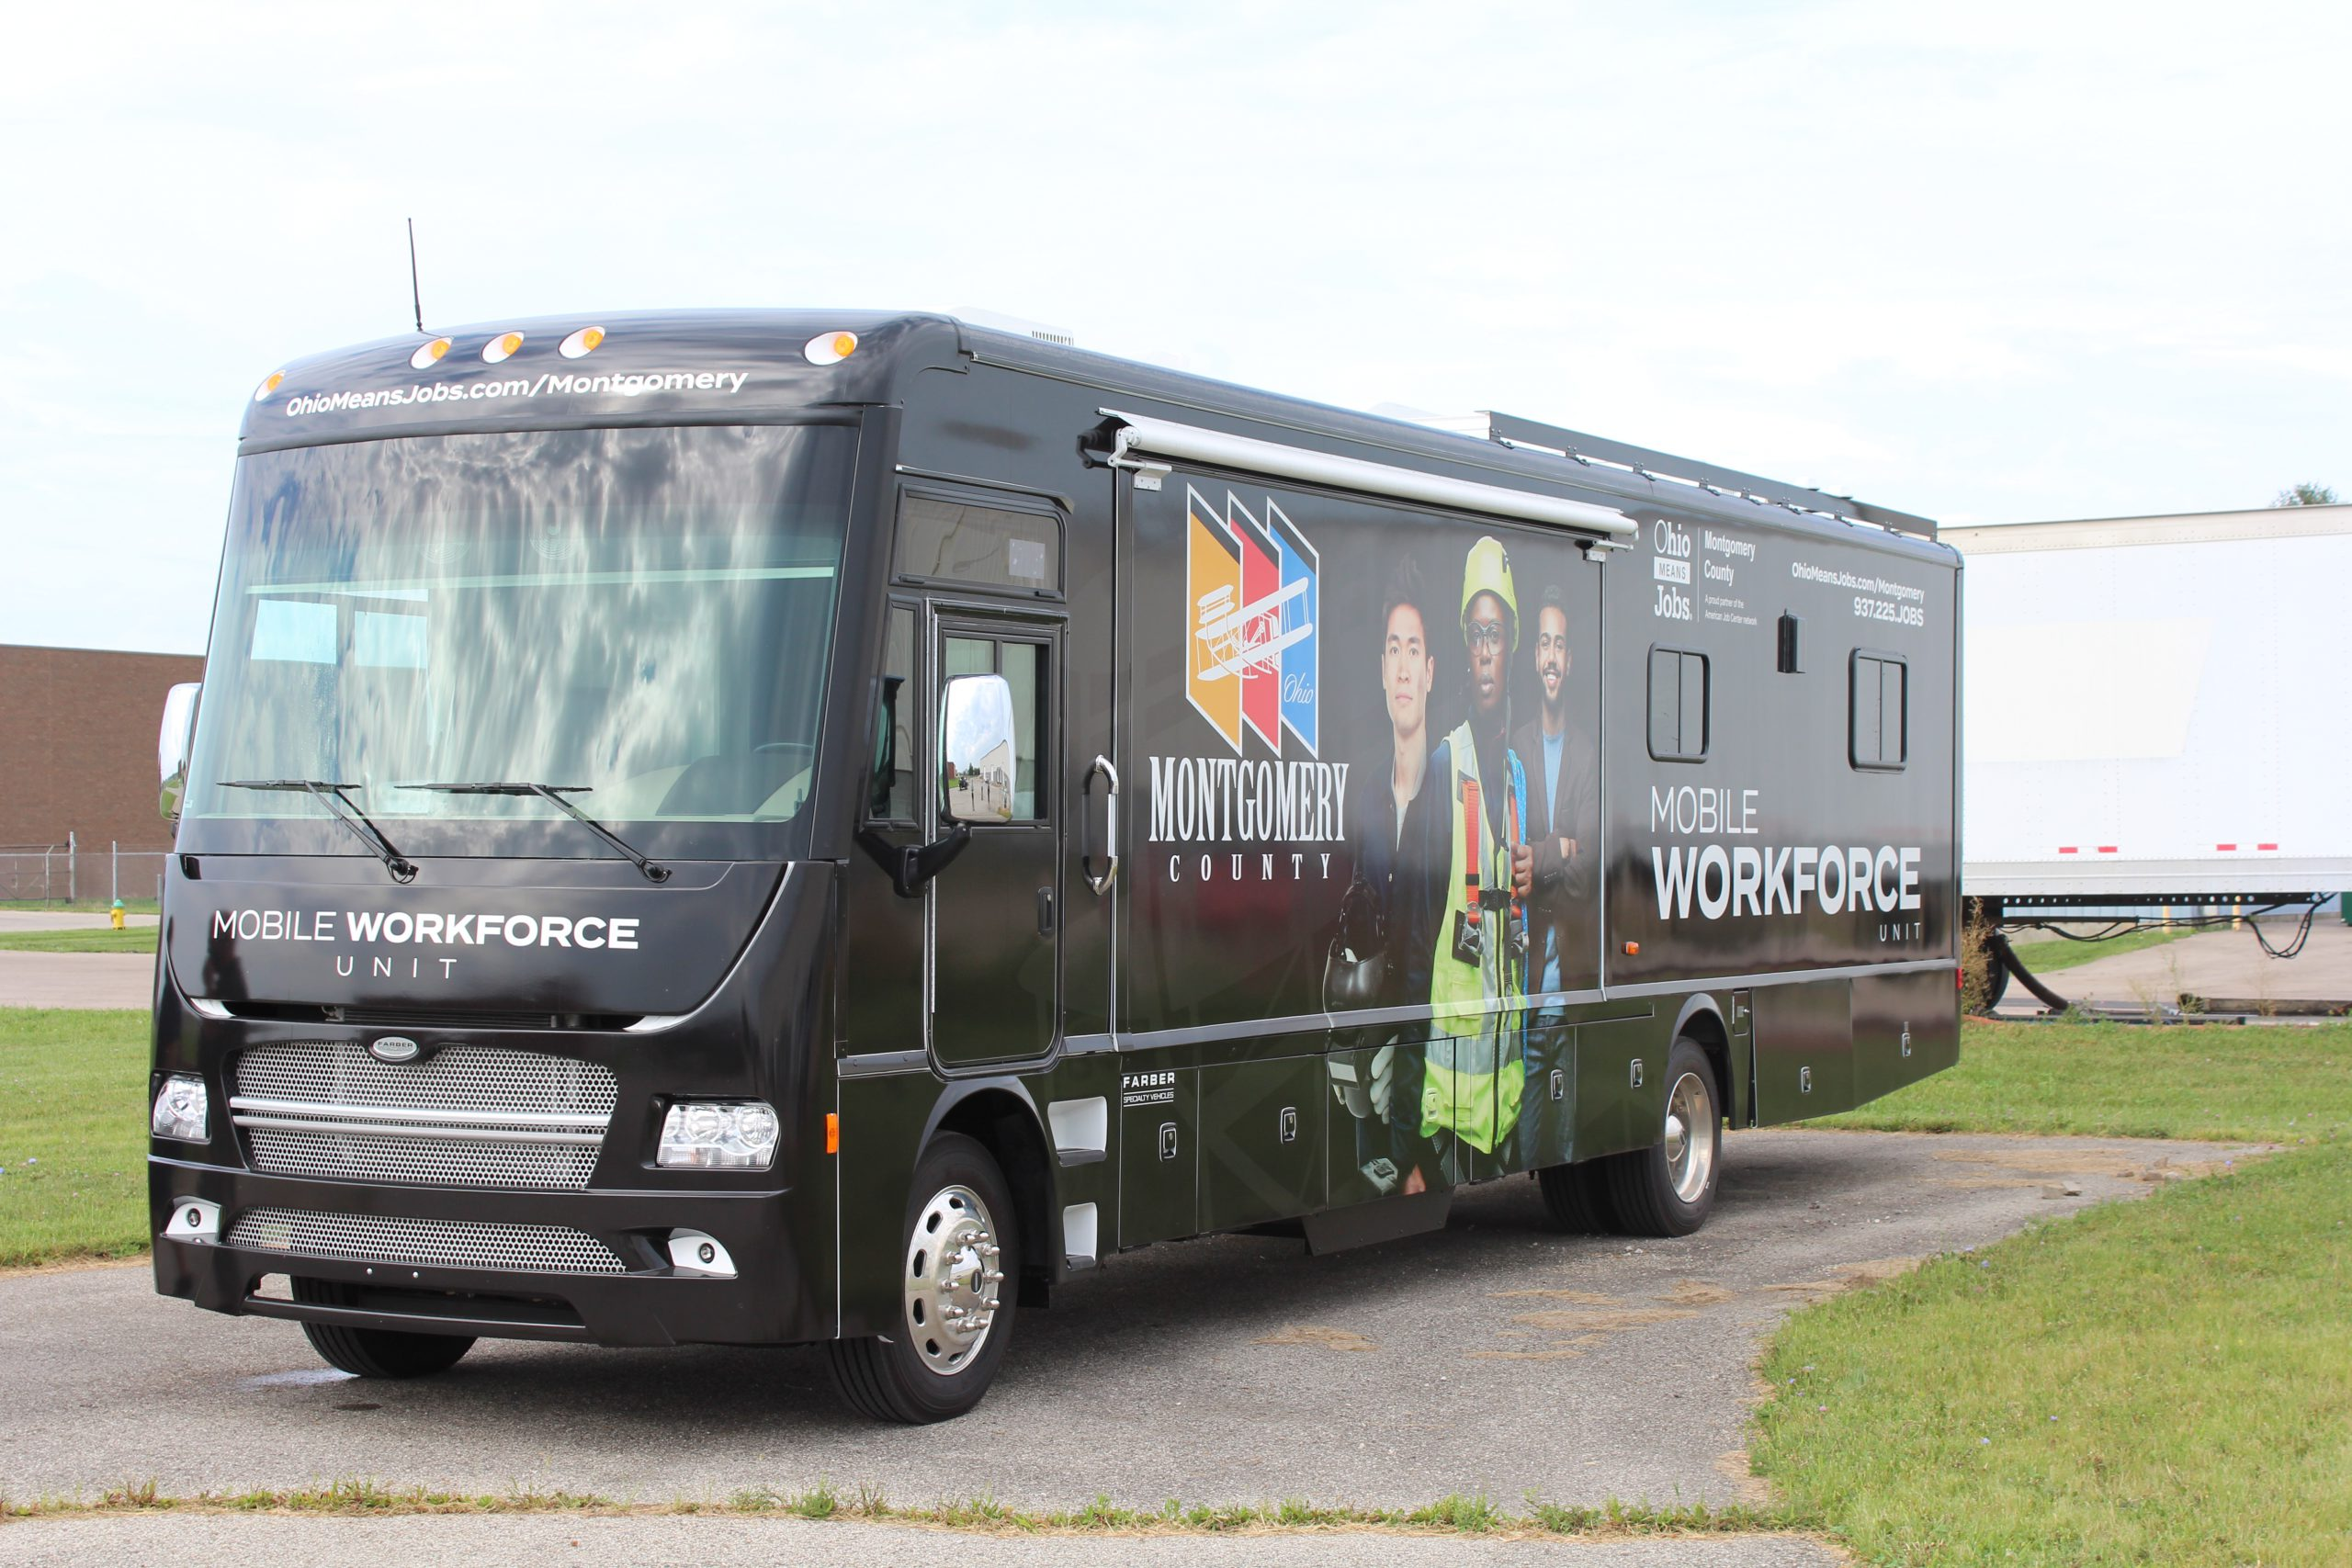 Montgomery County Mobile Workforce Unit